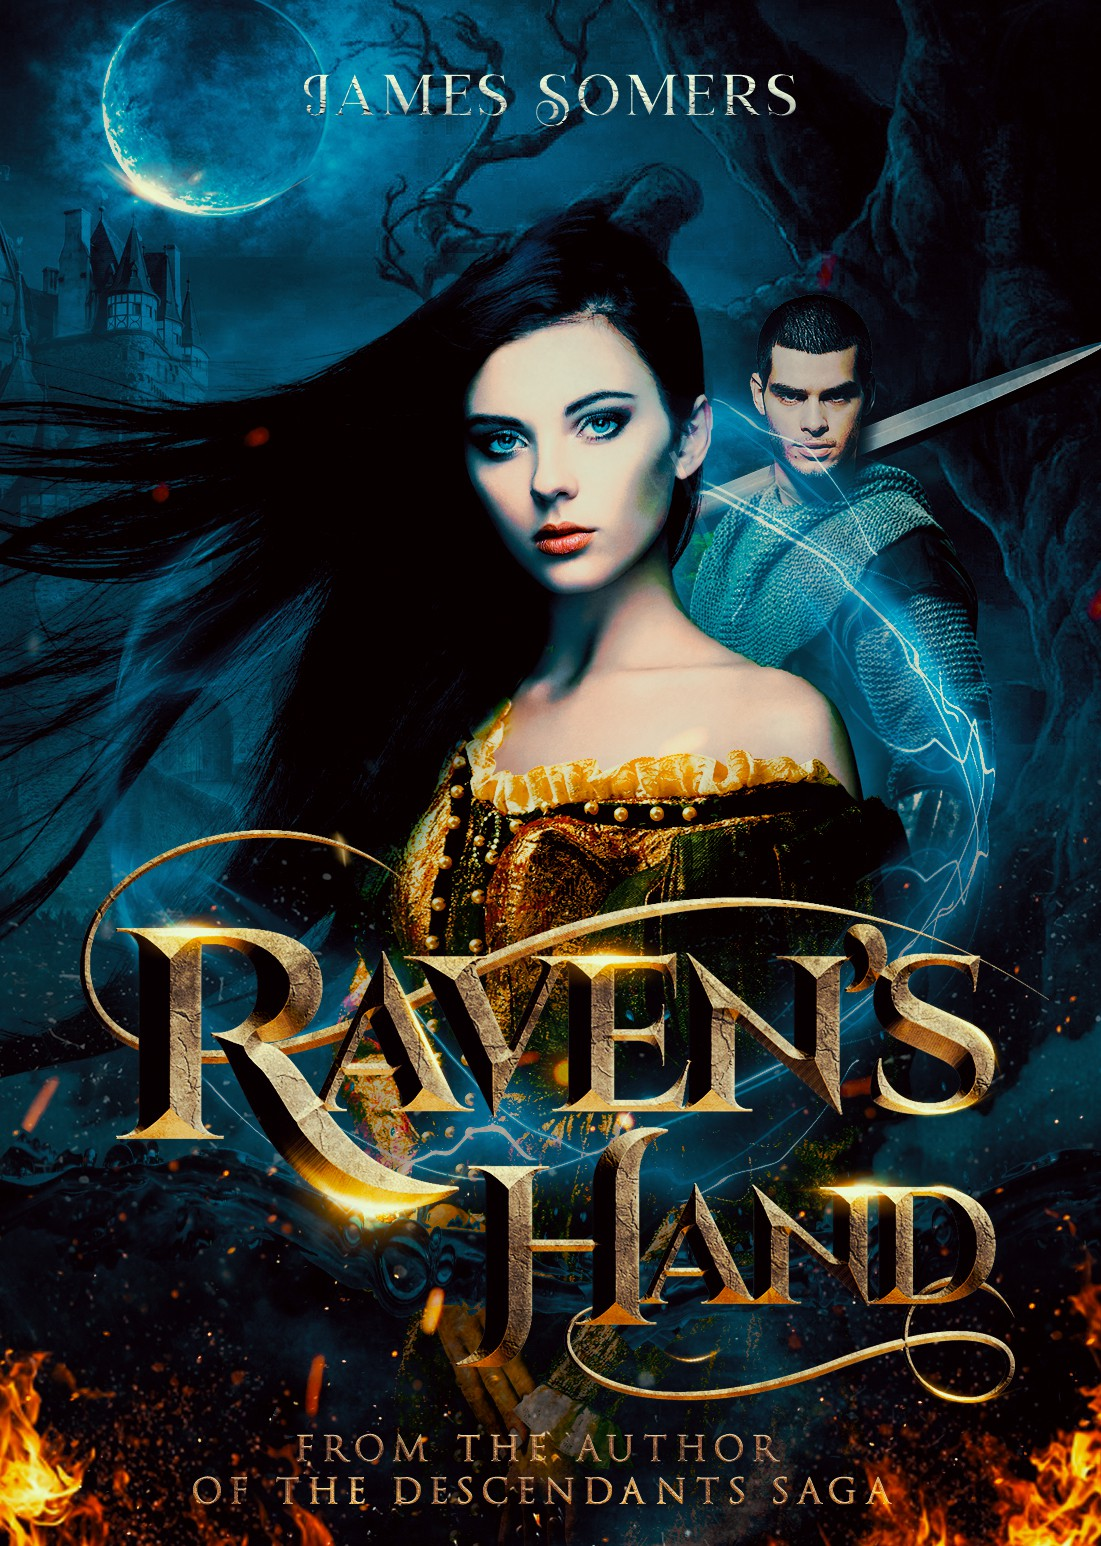 Raven's Hand fantasy romance kindle e-book and completed audible.com cover version